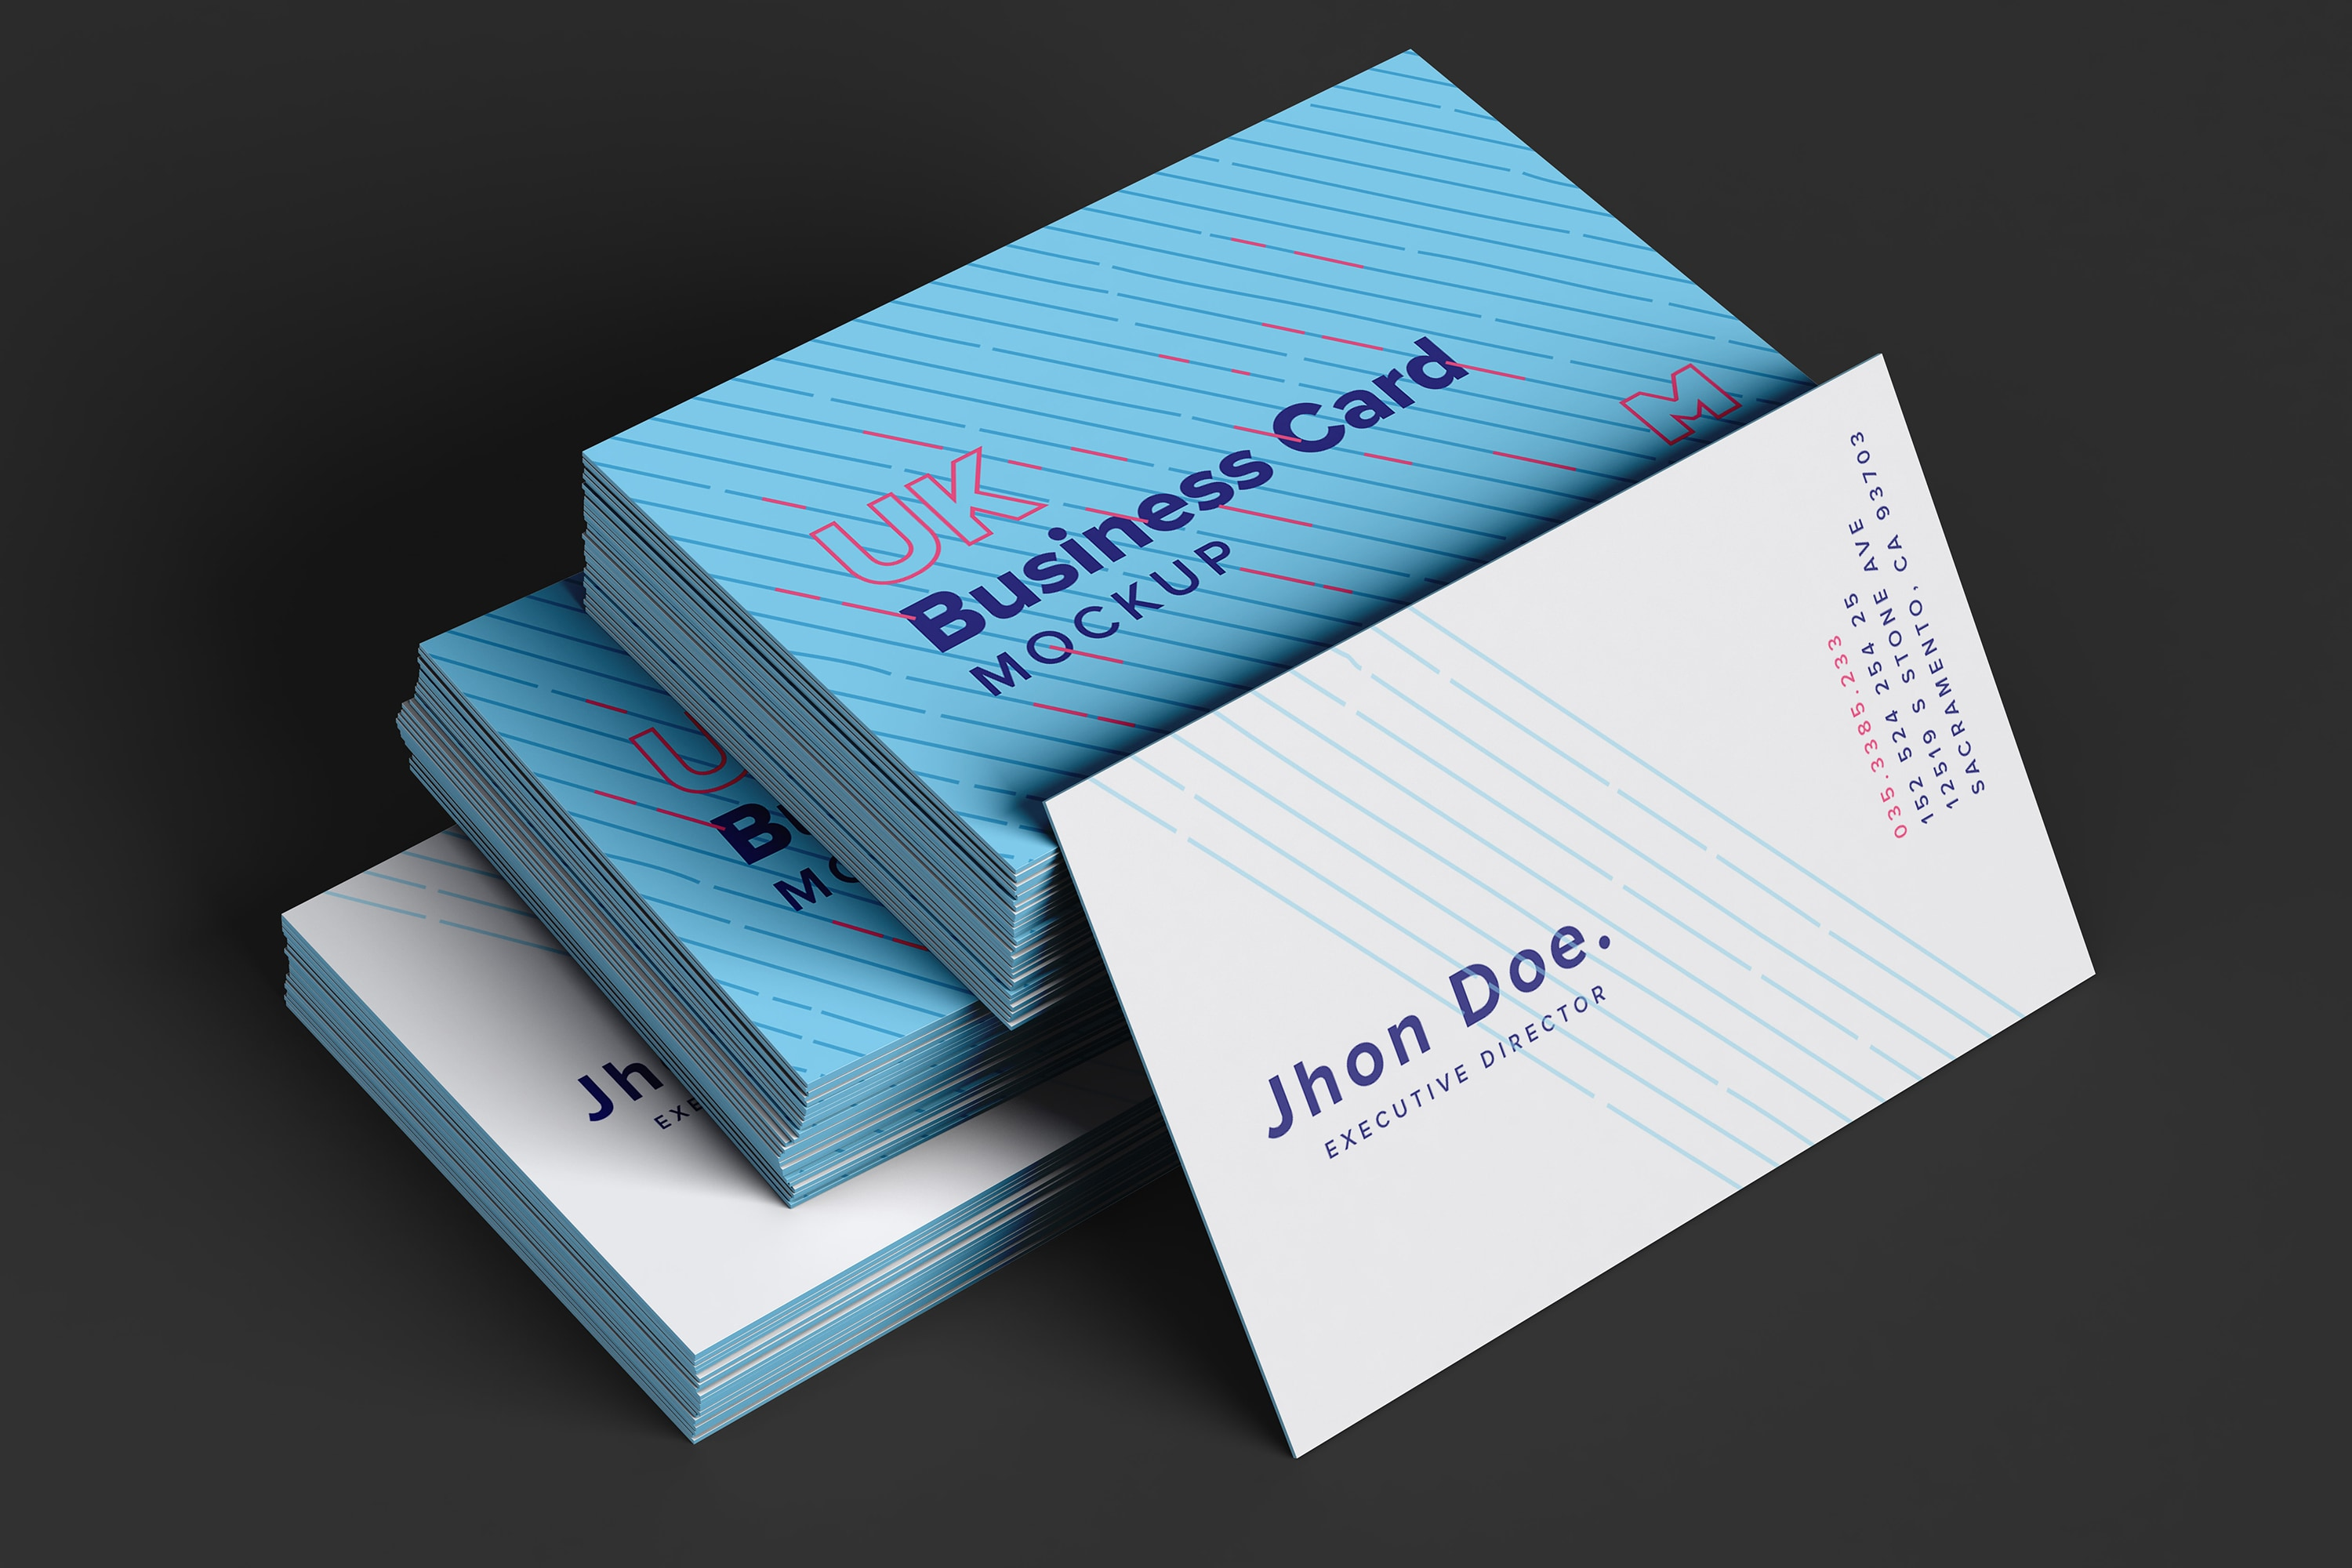 uk-business-cards-mockup-08-04.jpg